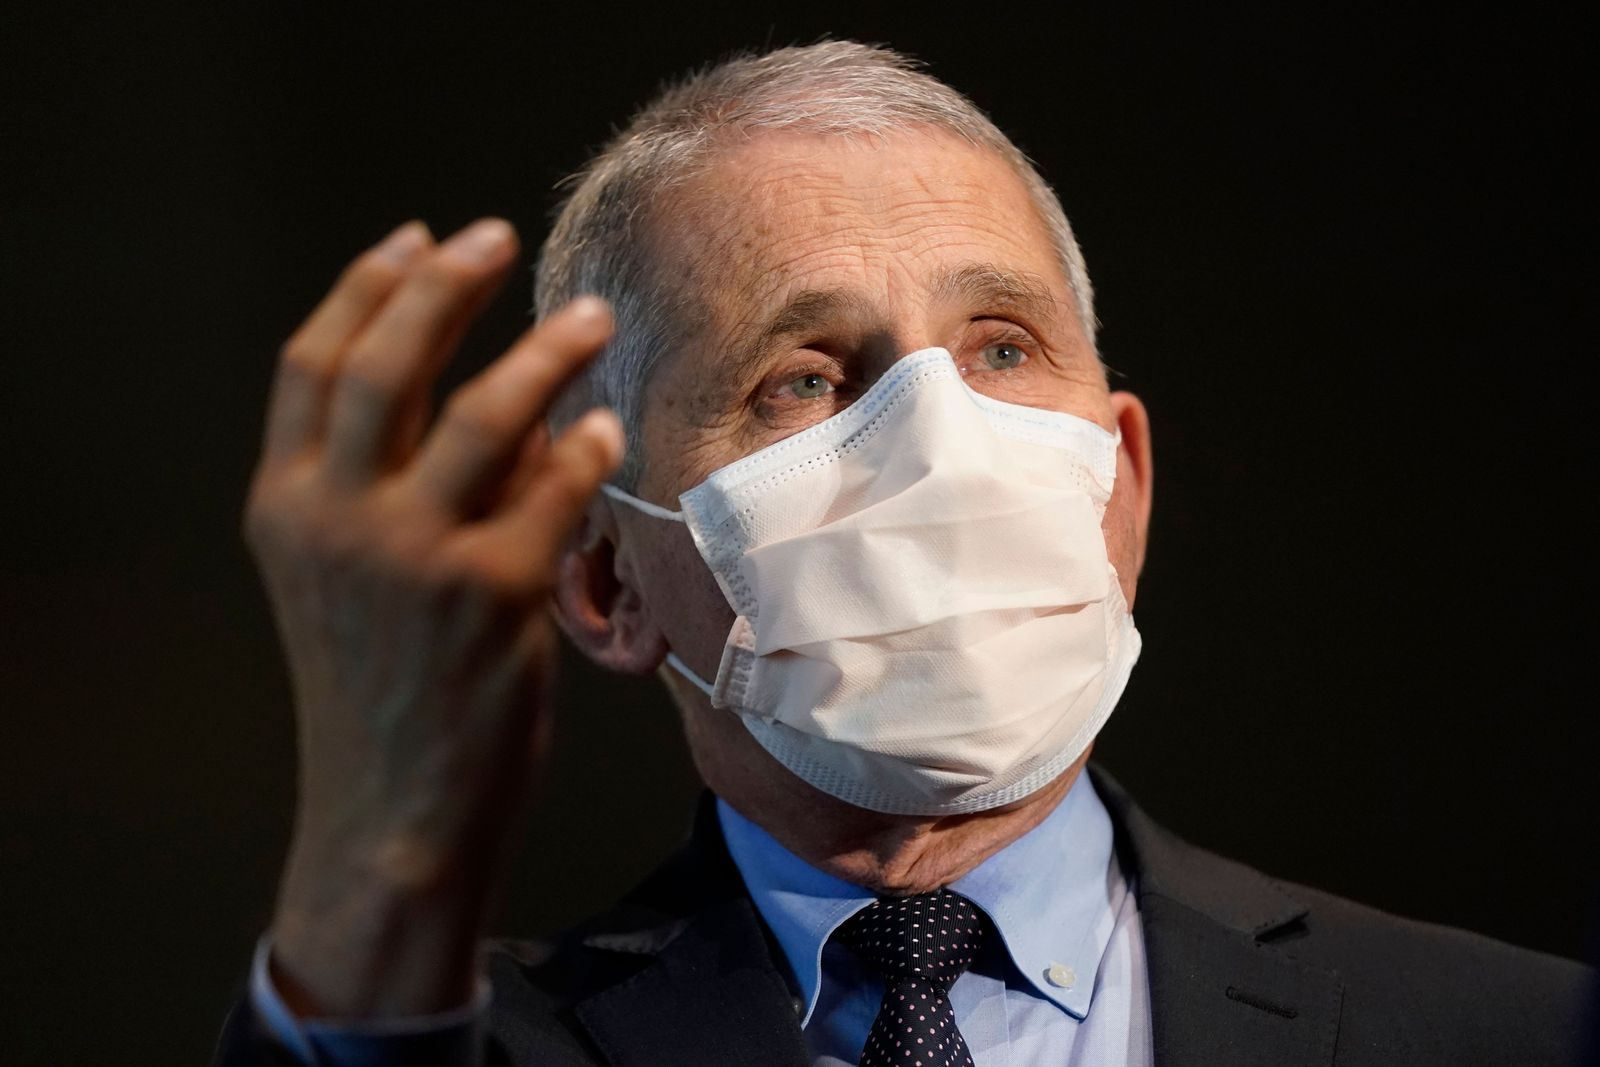 Dr. Anthony Fauci receives the COVID-19 vaccine, Bethesda, USA - 22 Dec 2020